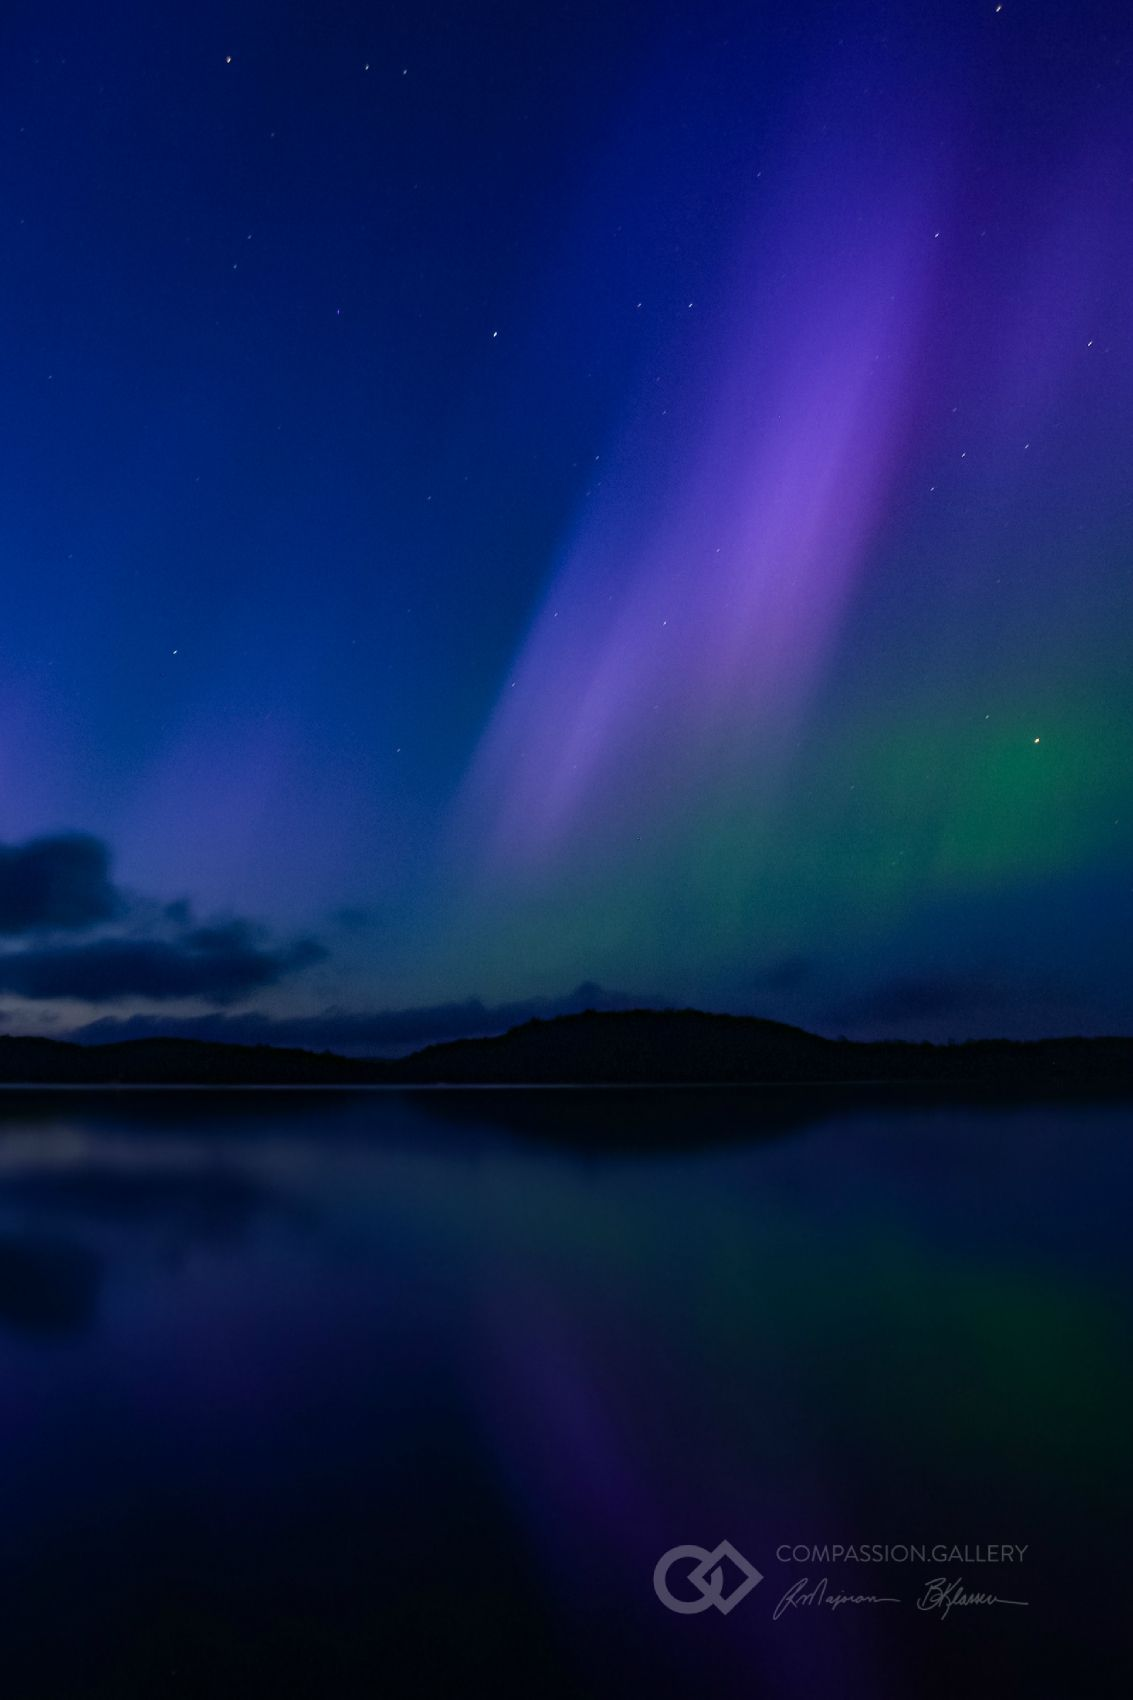 Ray Majoran - Aurora Borealis (Northern Lights) Photo